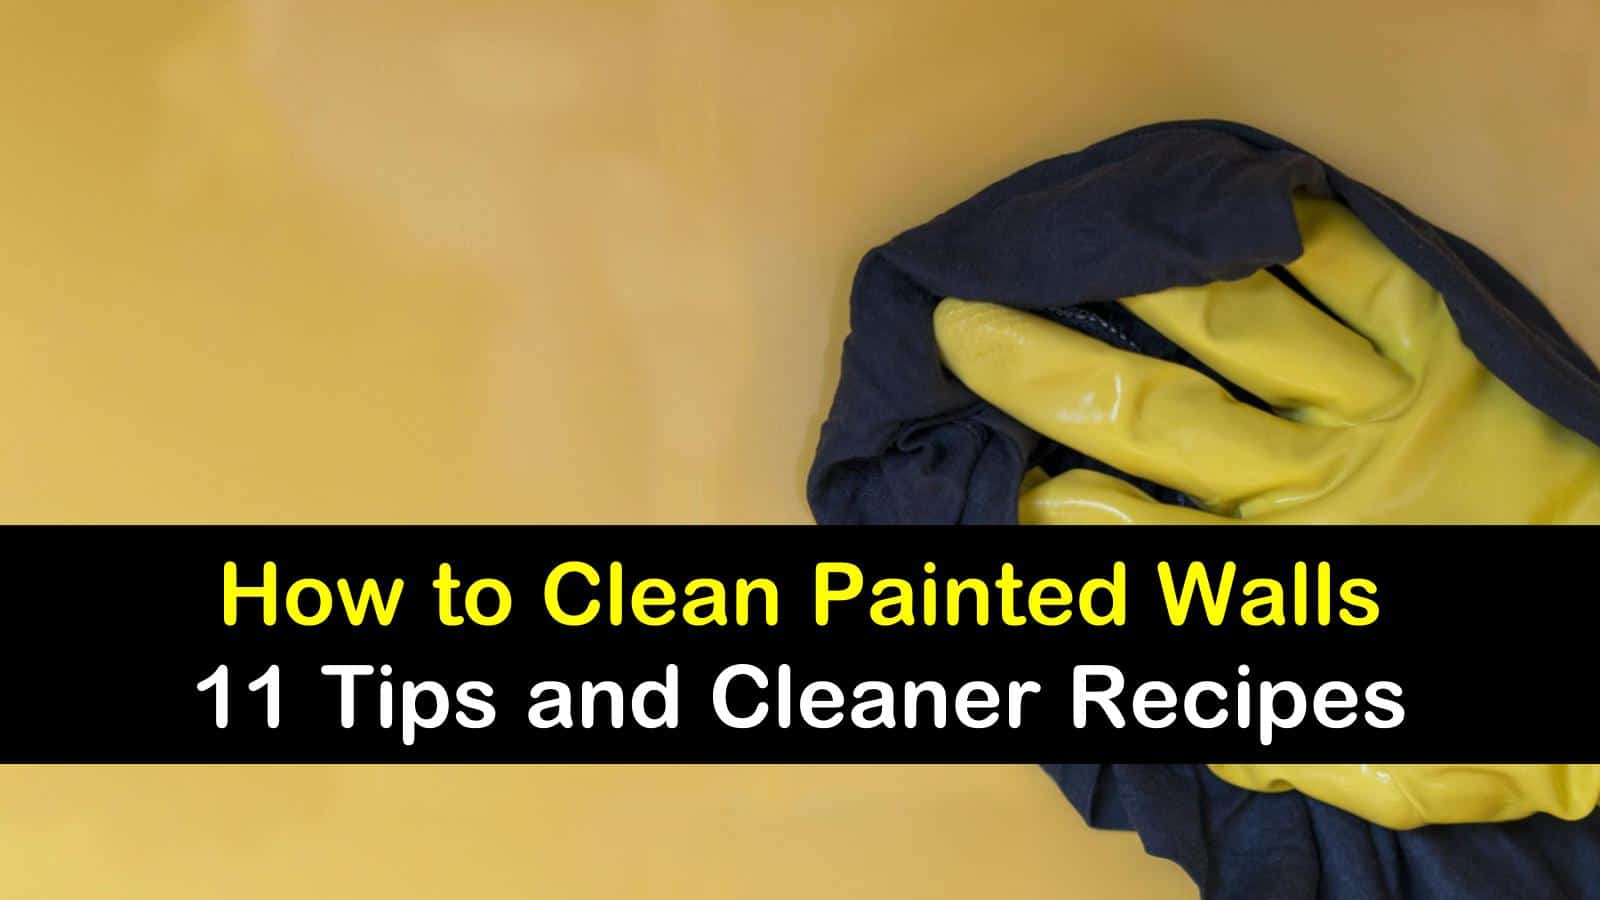 how to clean painted walls titleimg1